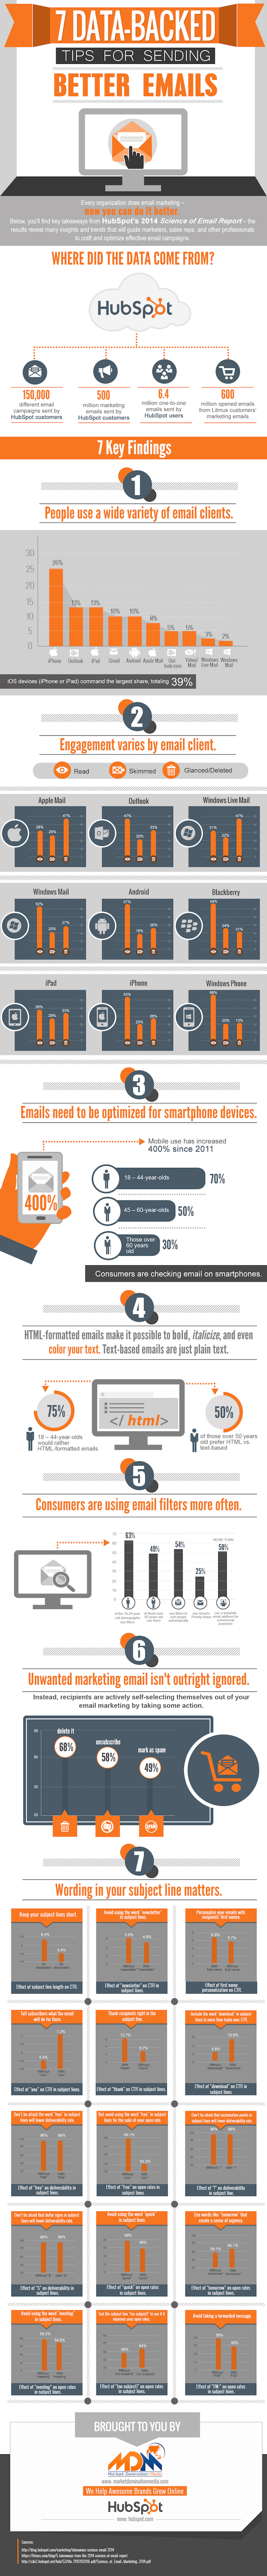 Increase-Engagement-on-Email